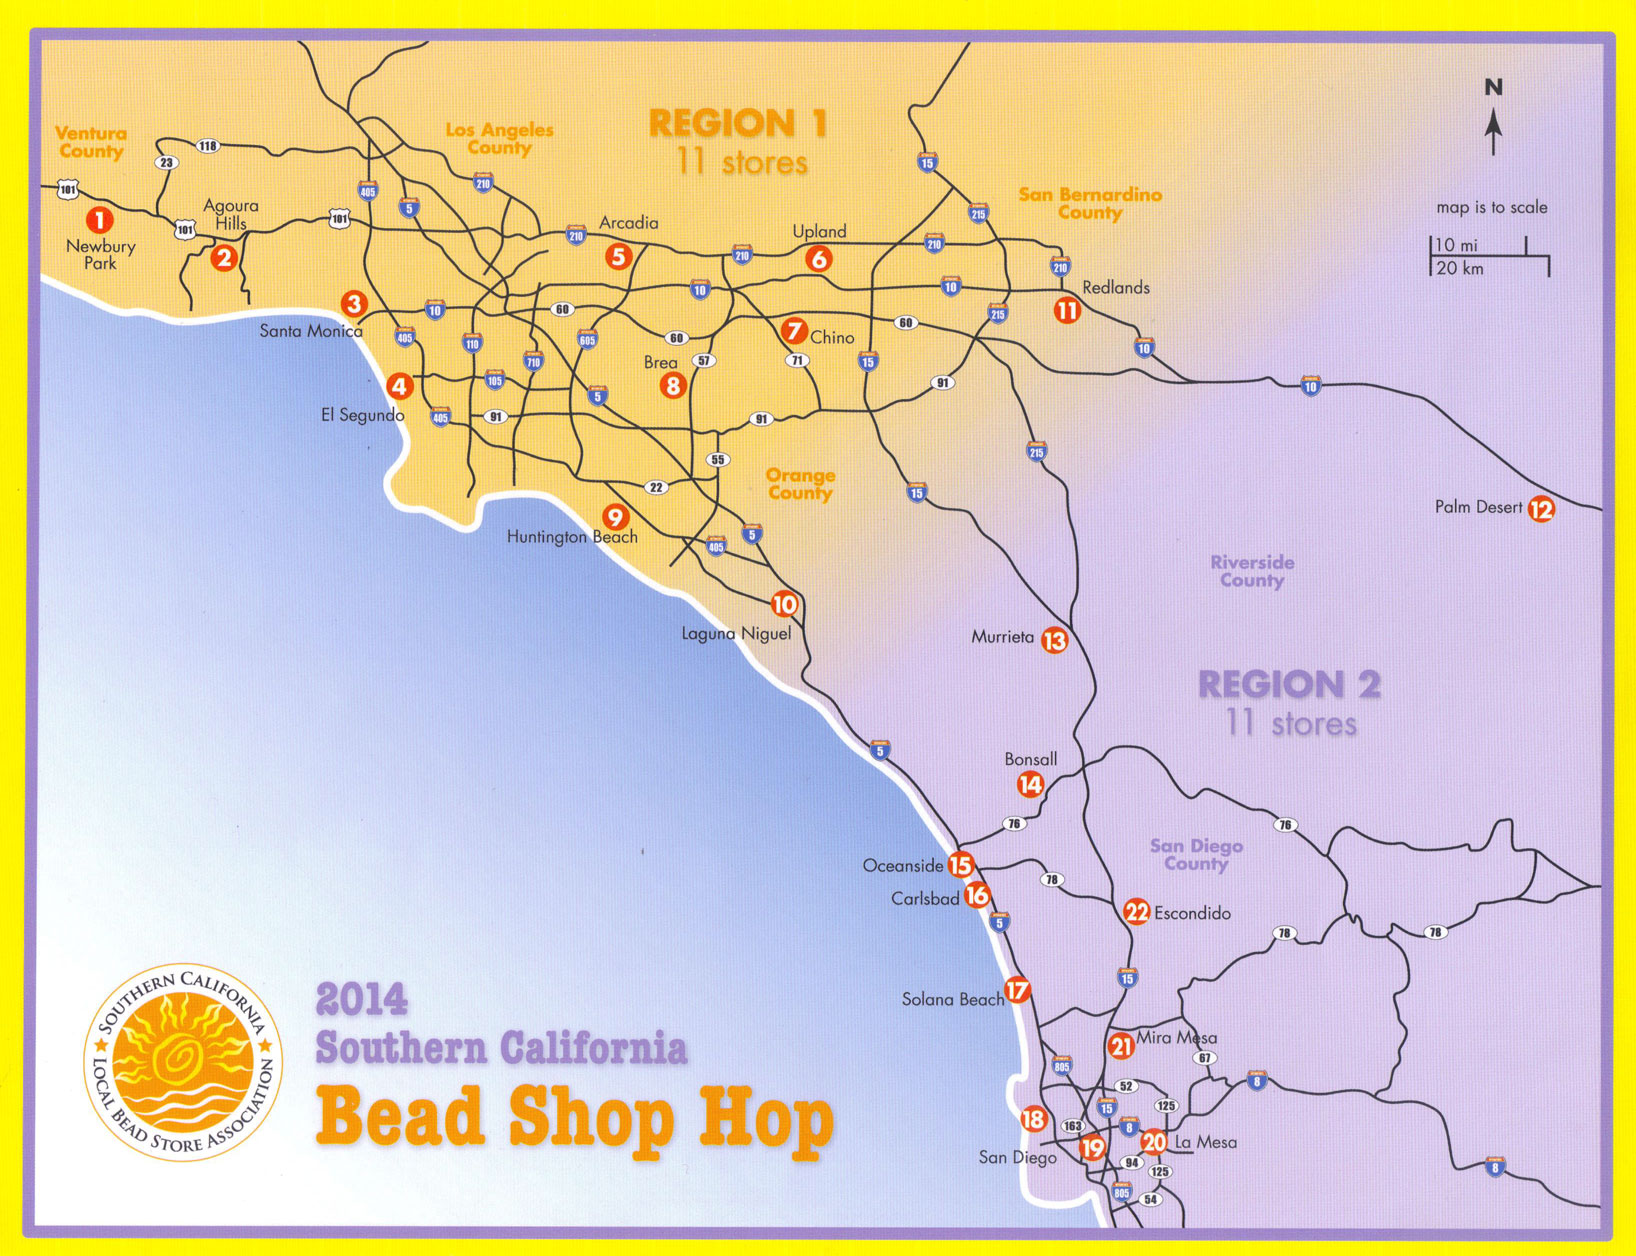 2014-So-Cal-Bead-Shop-Hop